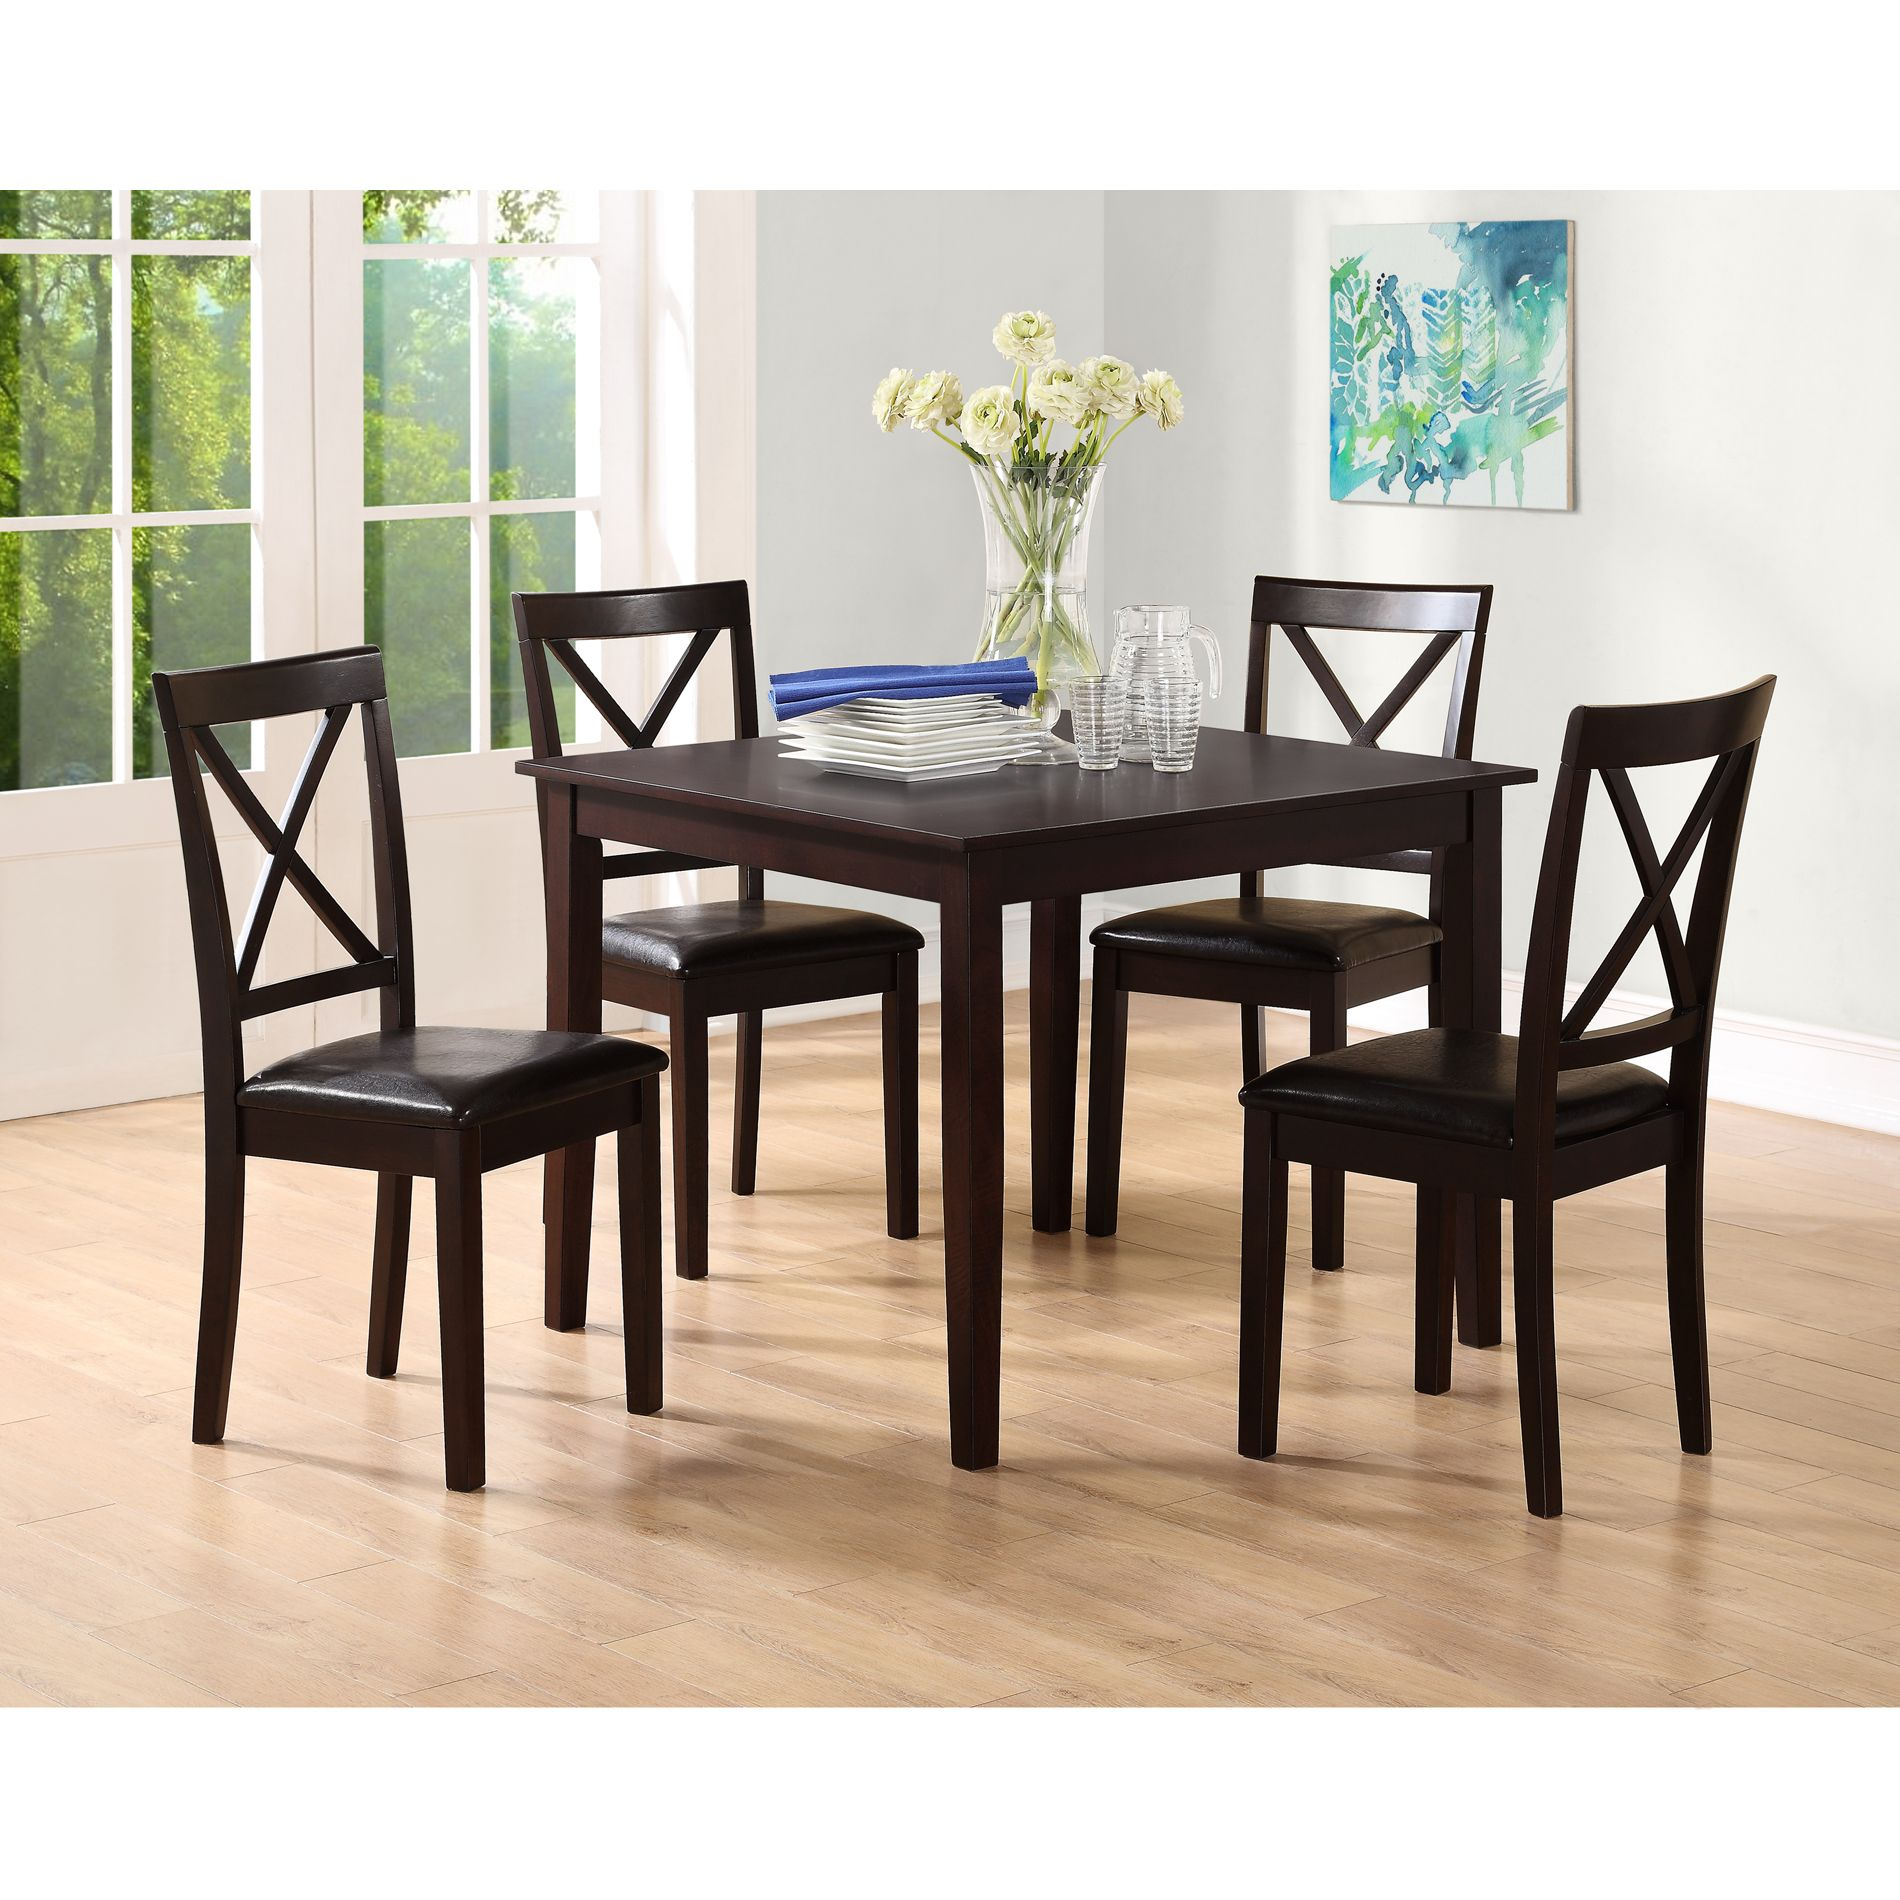 Dark Wood Dining Room Chairs Best Enjoy A Wonderful Meal With Family Or Friends Served On The Sydney 2018